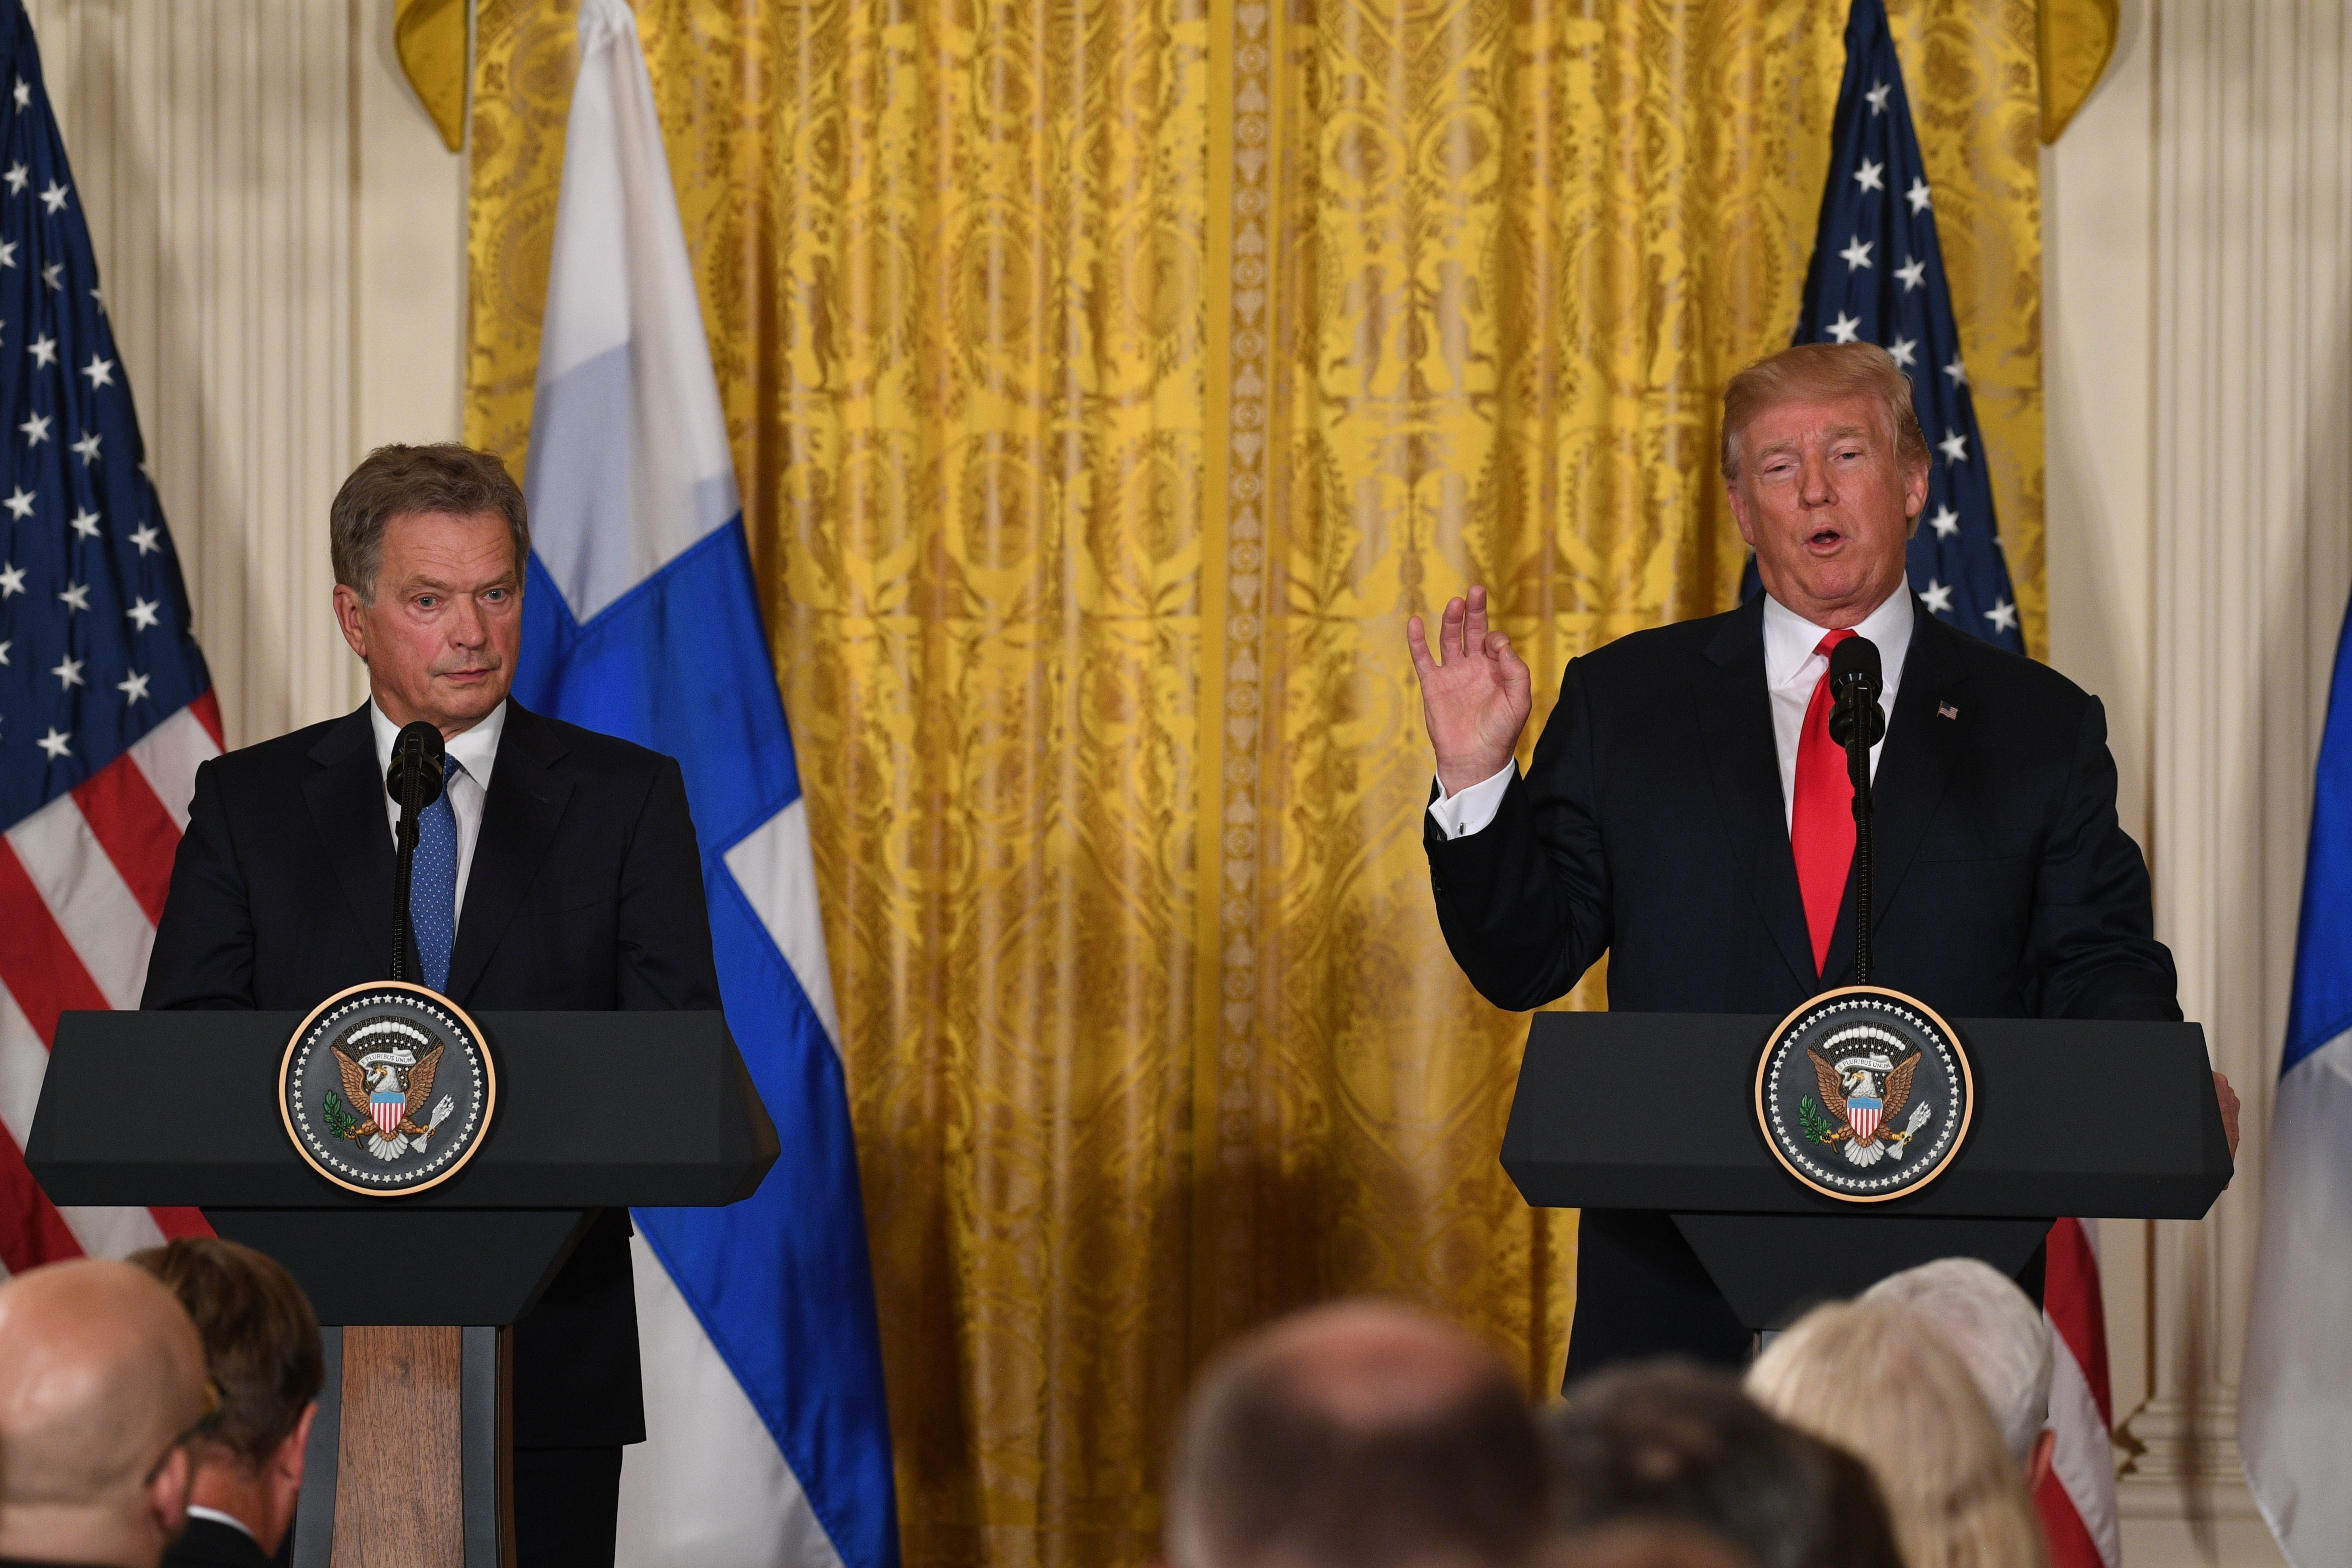 US President Donald Trump and Finnish President Sauli Niinistö hold a joint press conference on August 28, 2017, at the White House in Washington, DC. / AFP PHOTO / JIM WATSON        (Photo credit should read JIM WATSON/AFP/Getty Images)